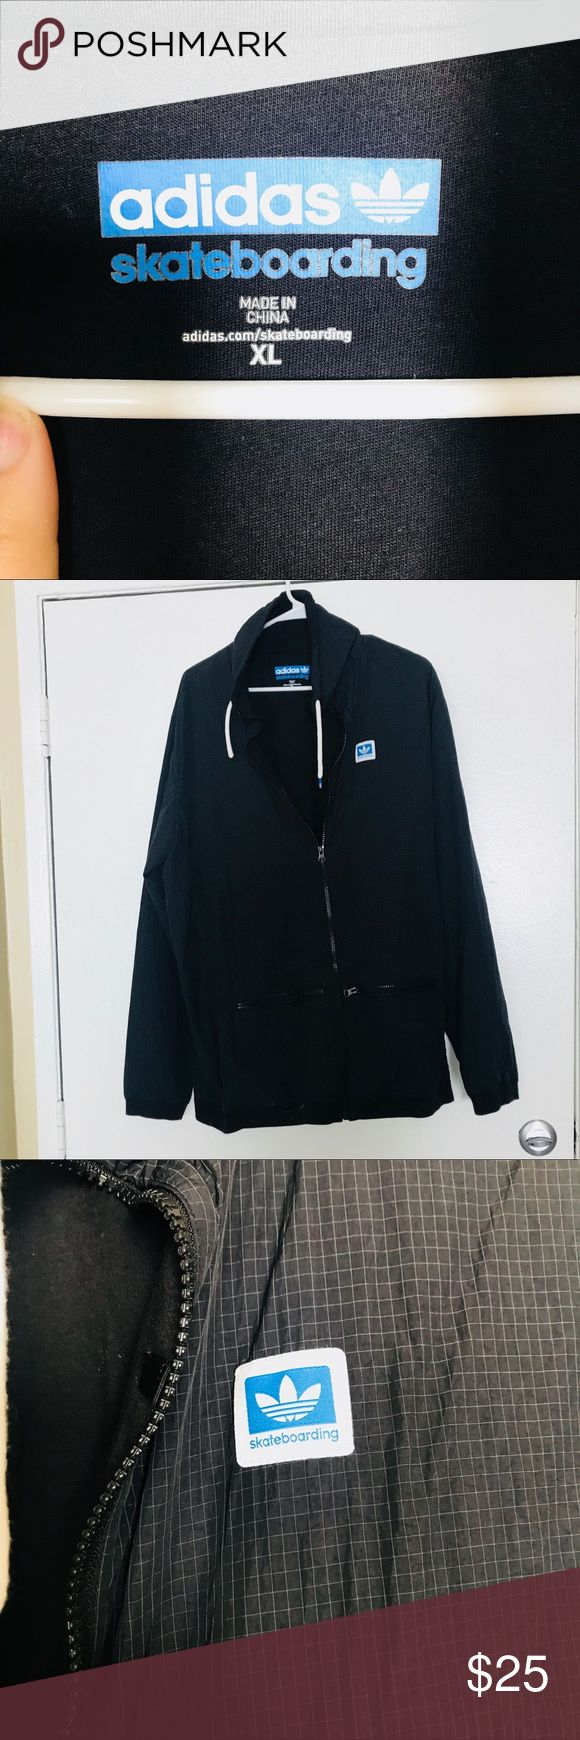 Men's Adidas Rain Jacket Perfect condition men's Rain Jacket, size XL with many pockets and a drawstring hood. adidas Jackets & Coats Raincoats